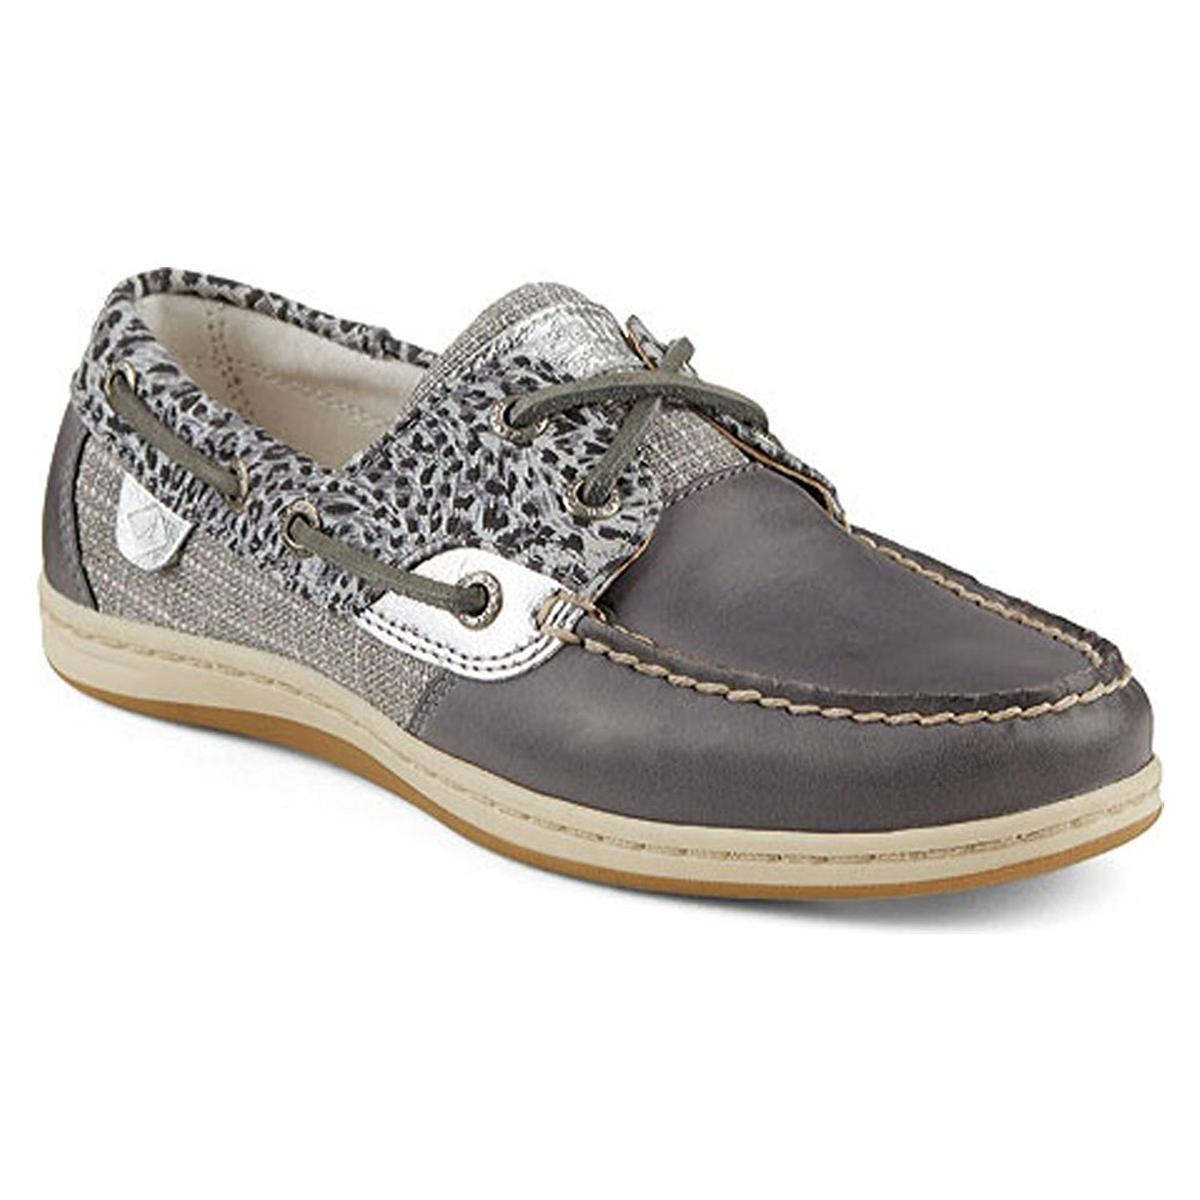 Sperry Top-Sider Koifish Womens Cheetah Taupe Boat Shoes